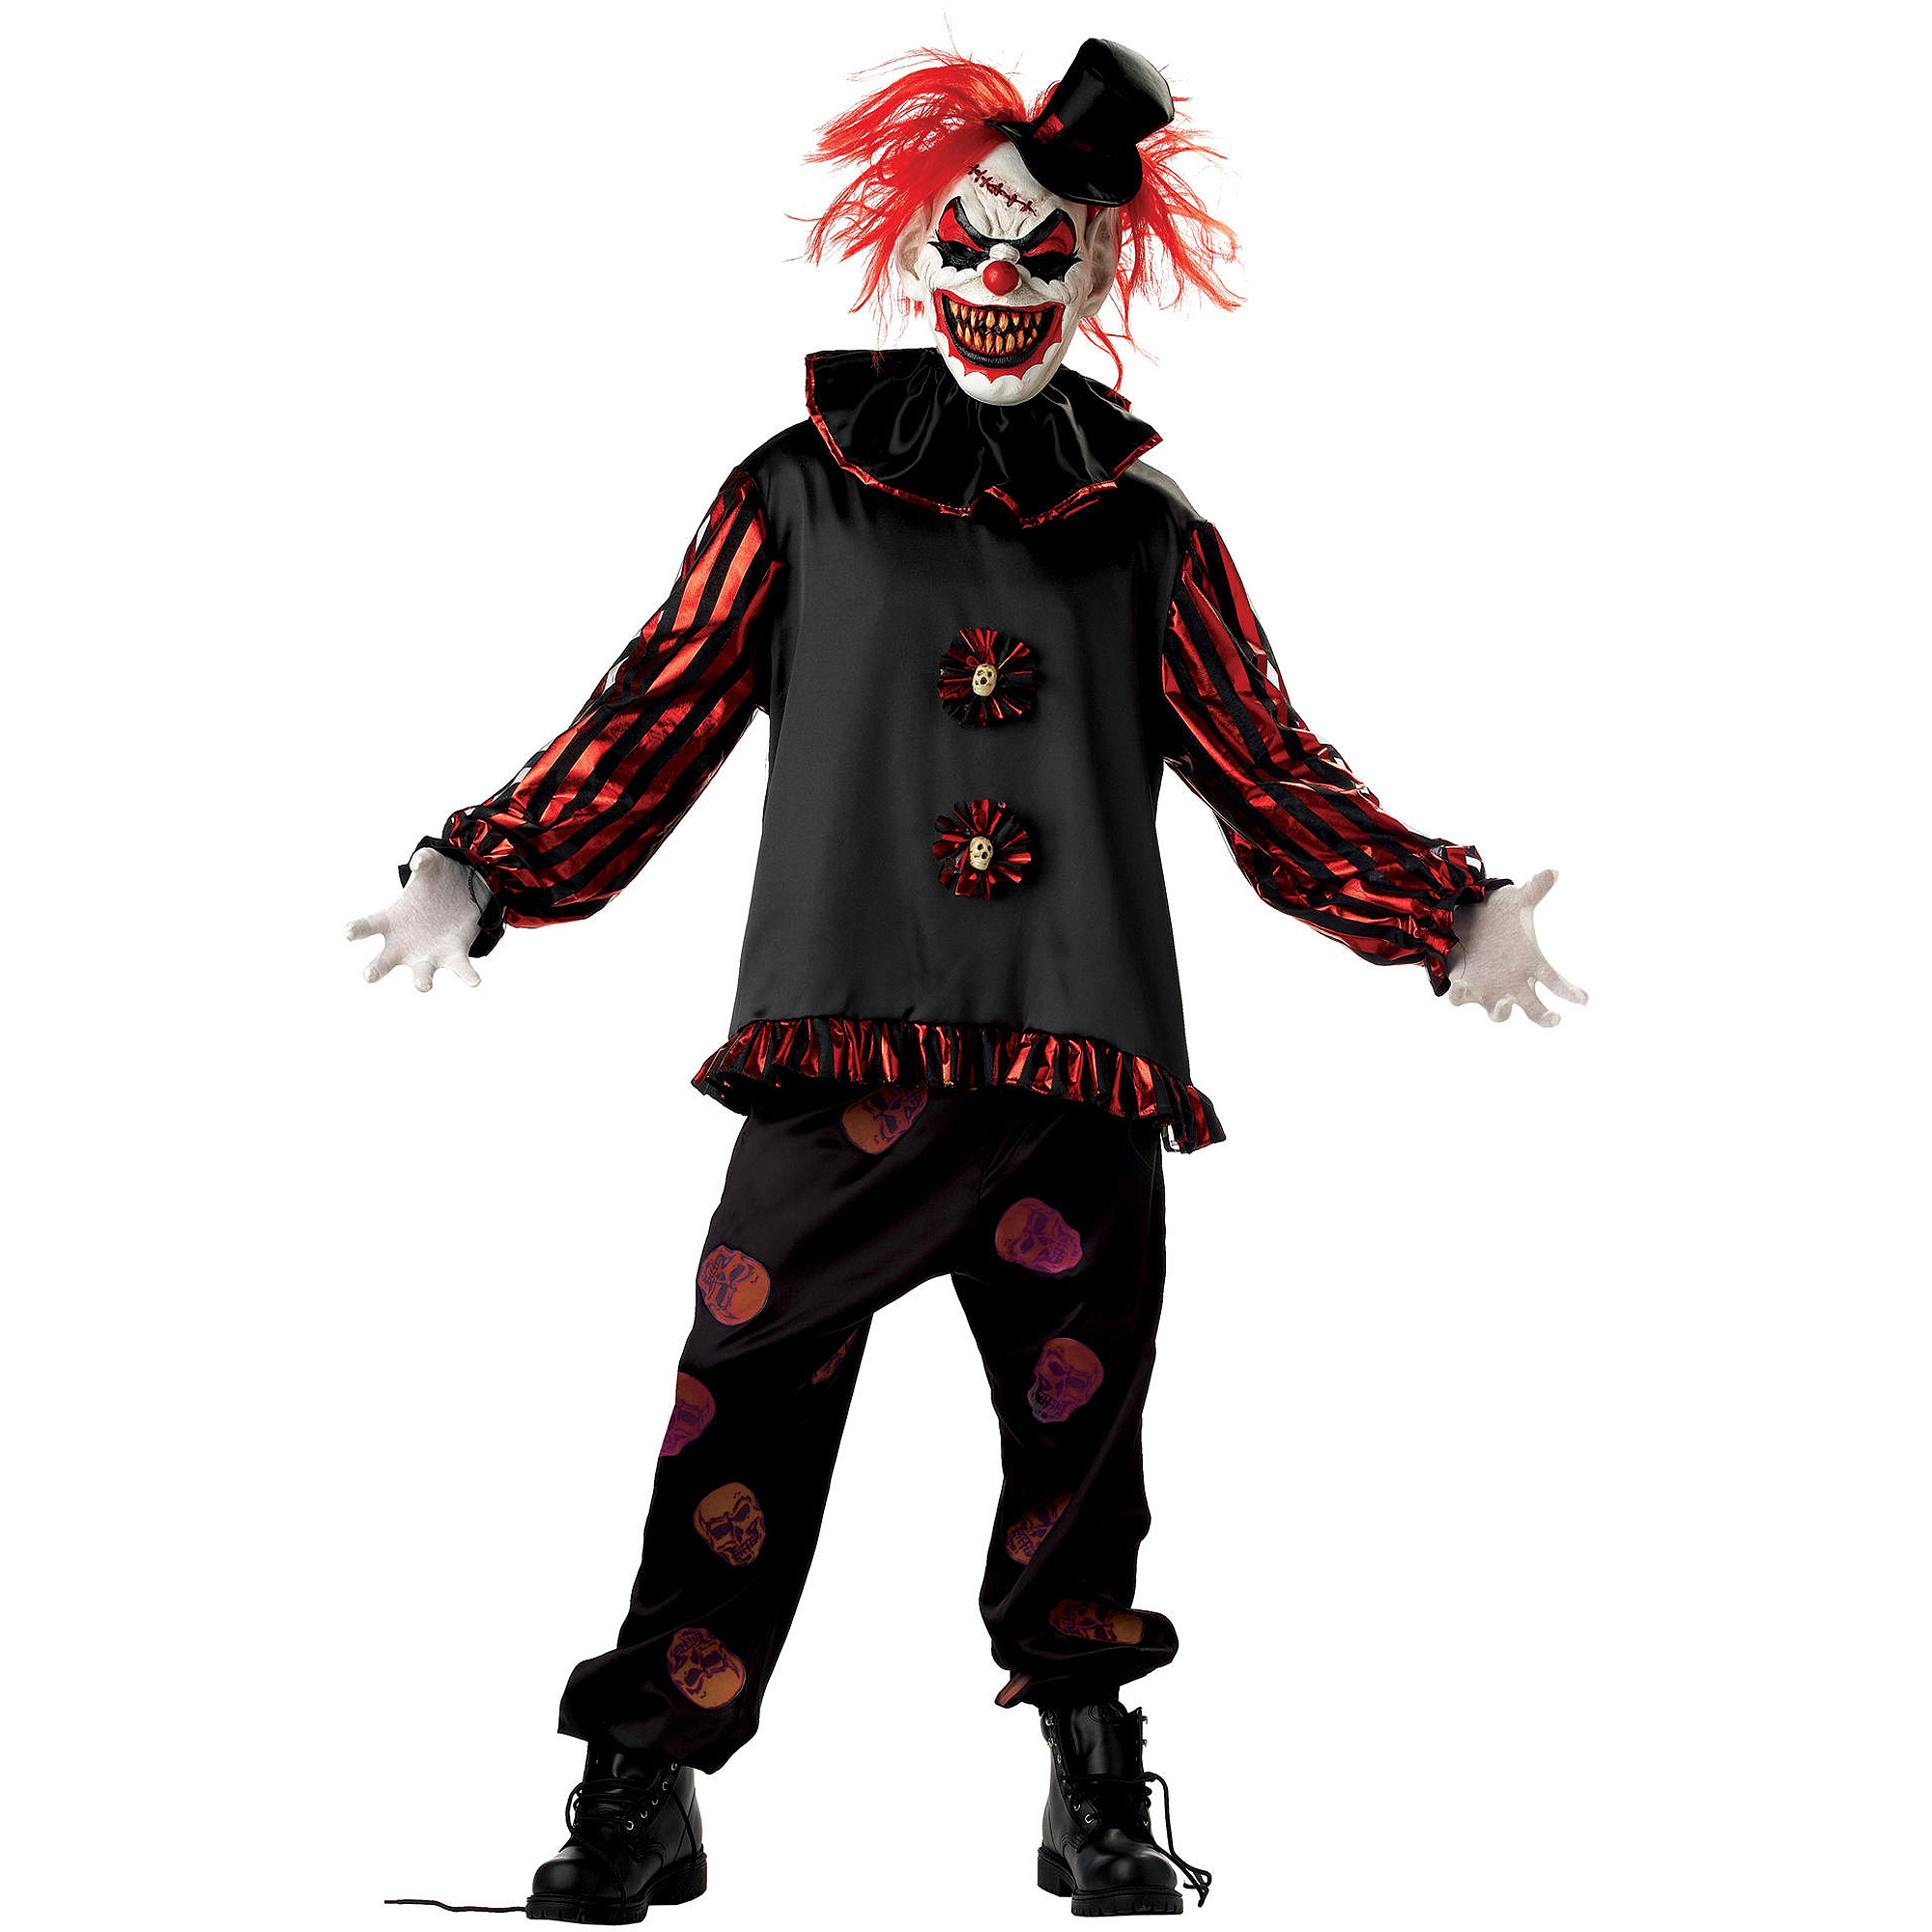 Carver the Killer Clown Adult Halloween Costume